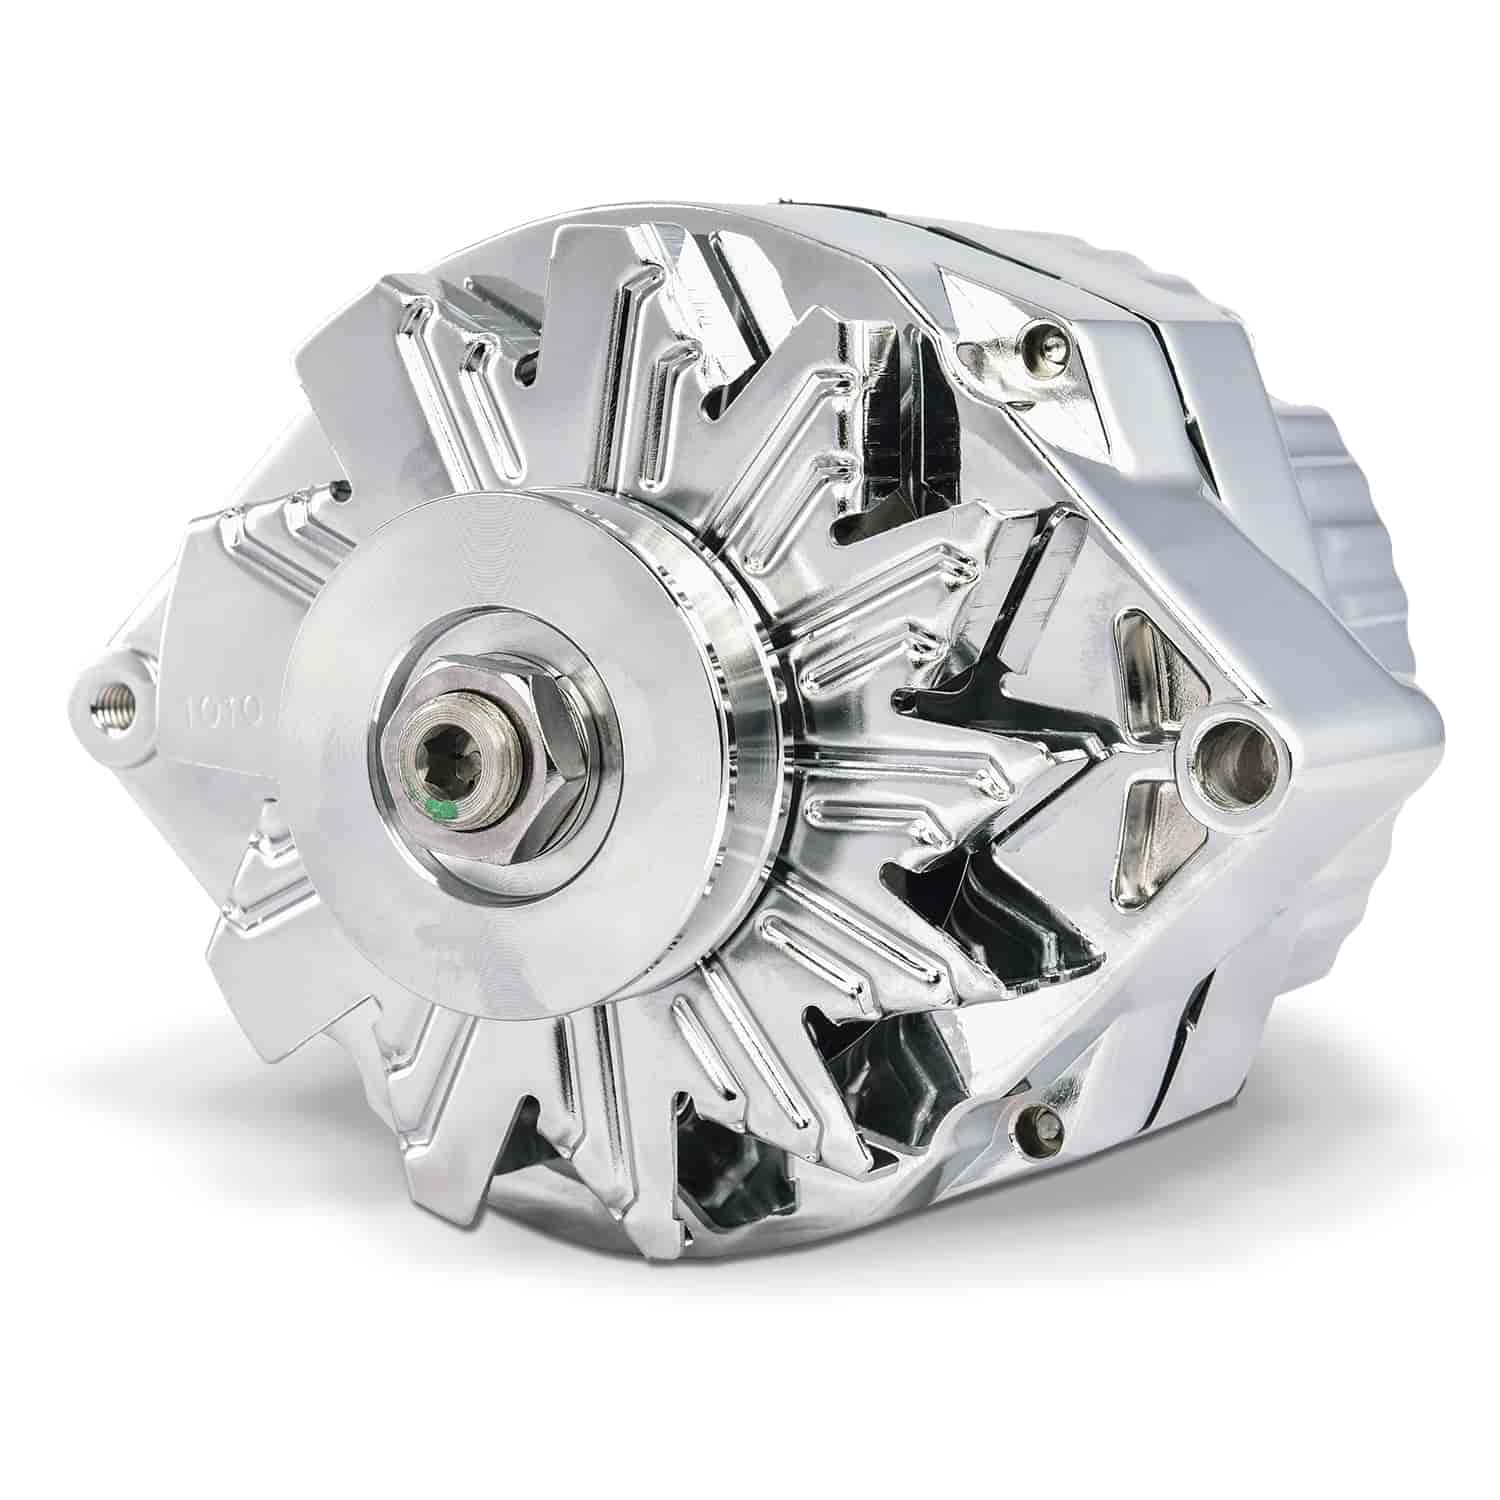 Proform 66445.14N - Proform 1-Wire GM Alternators